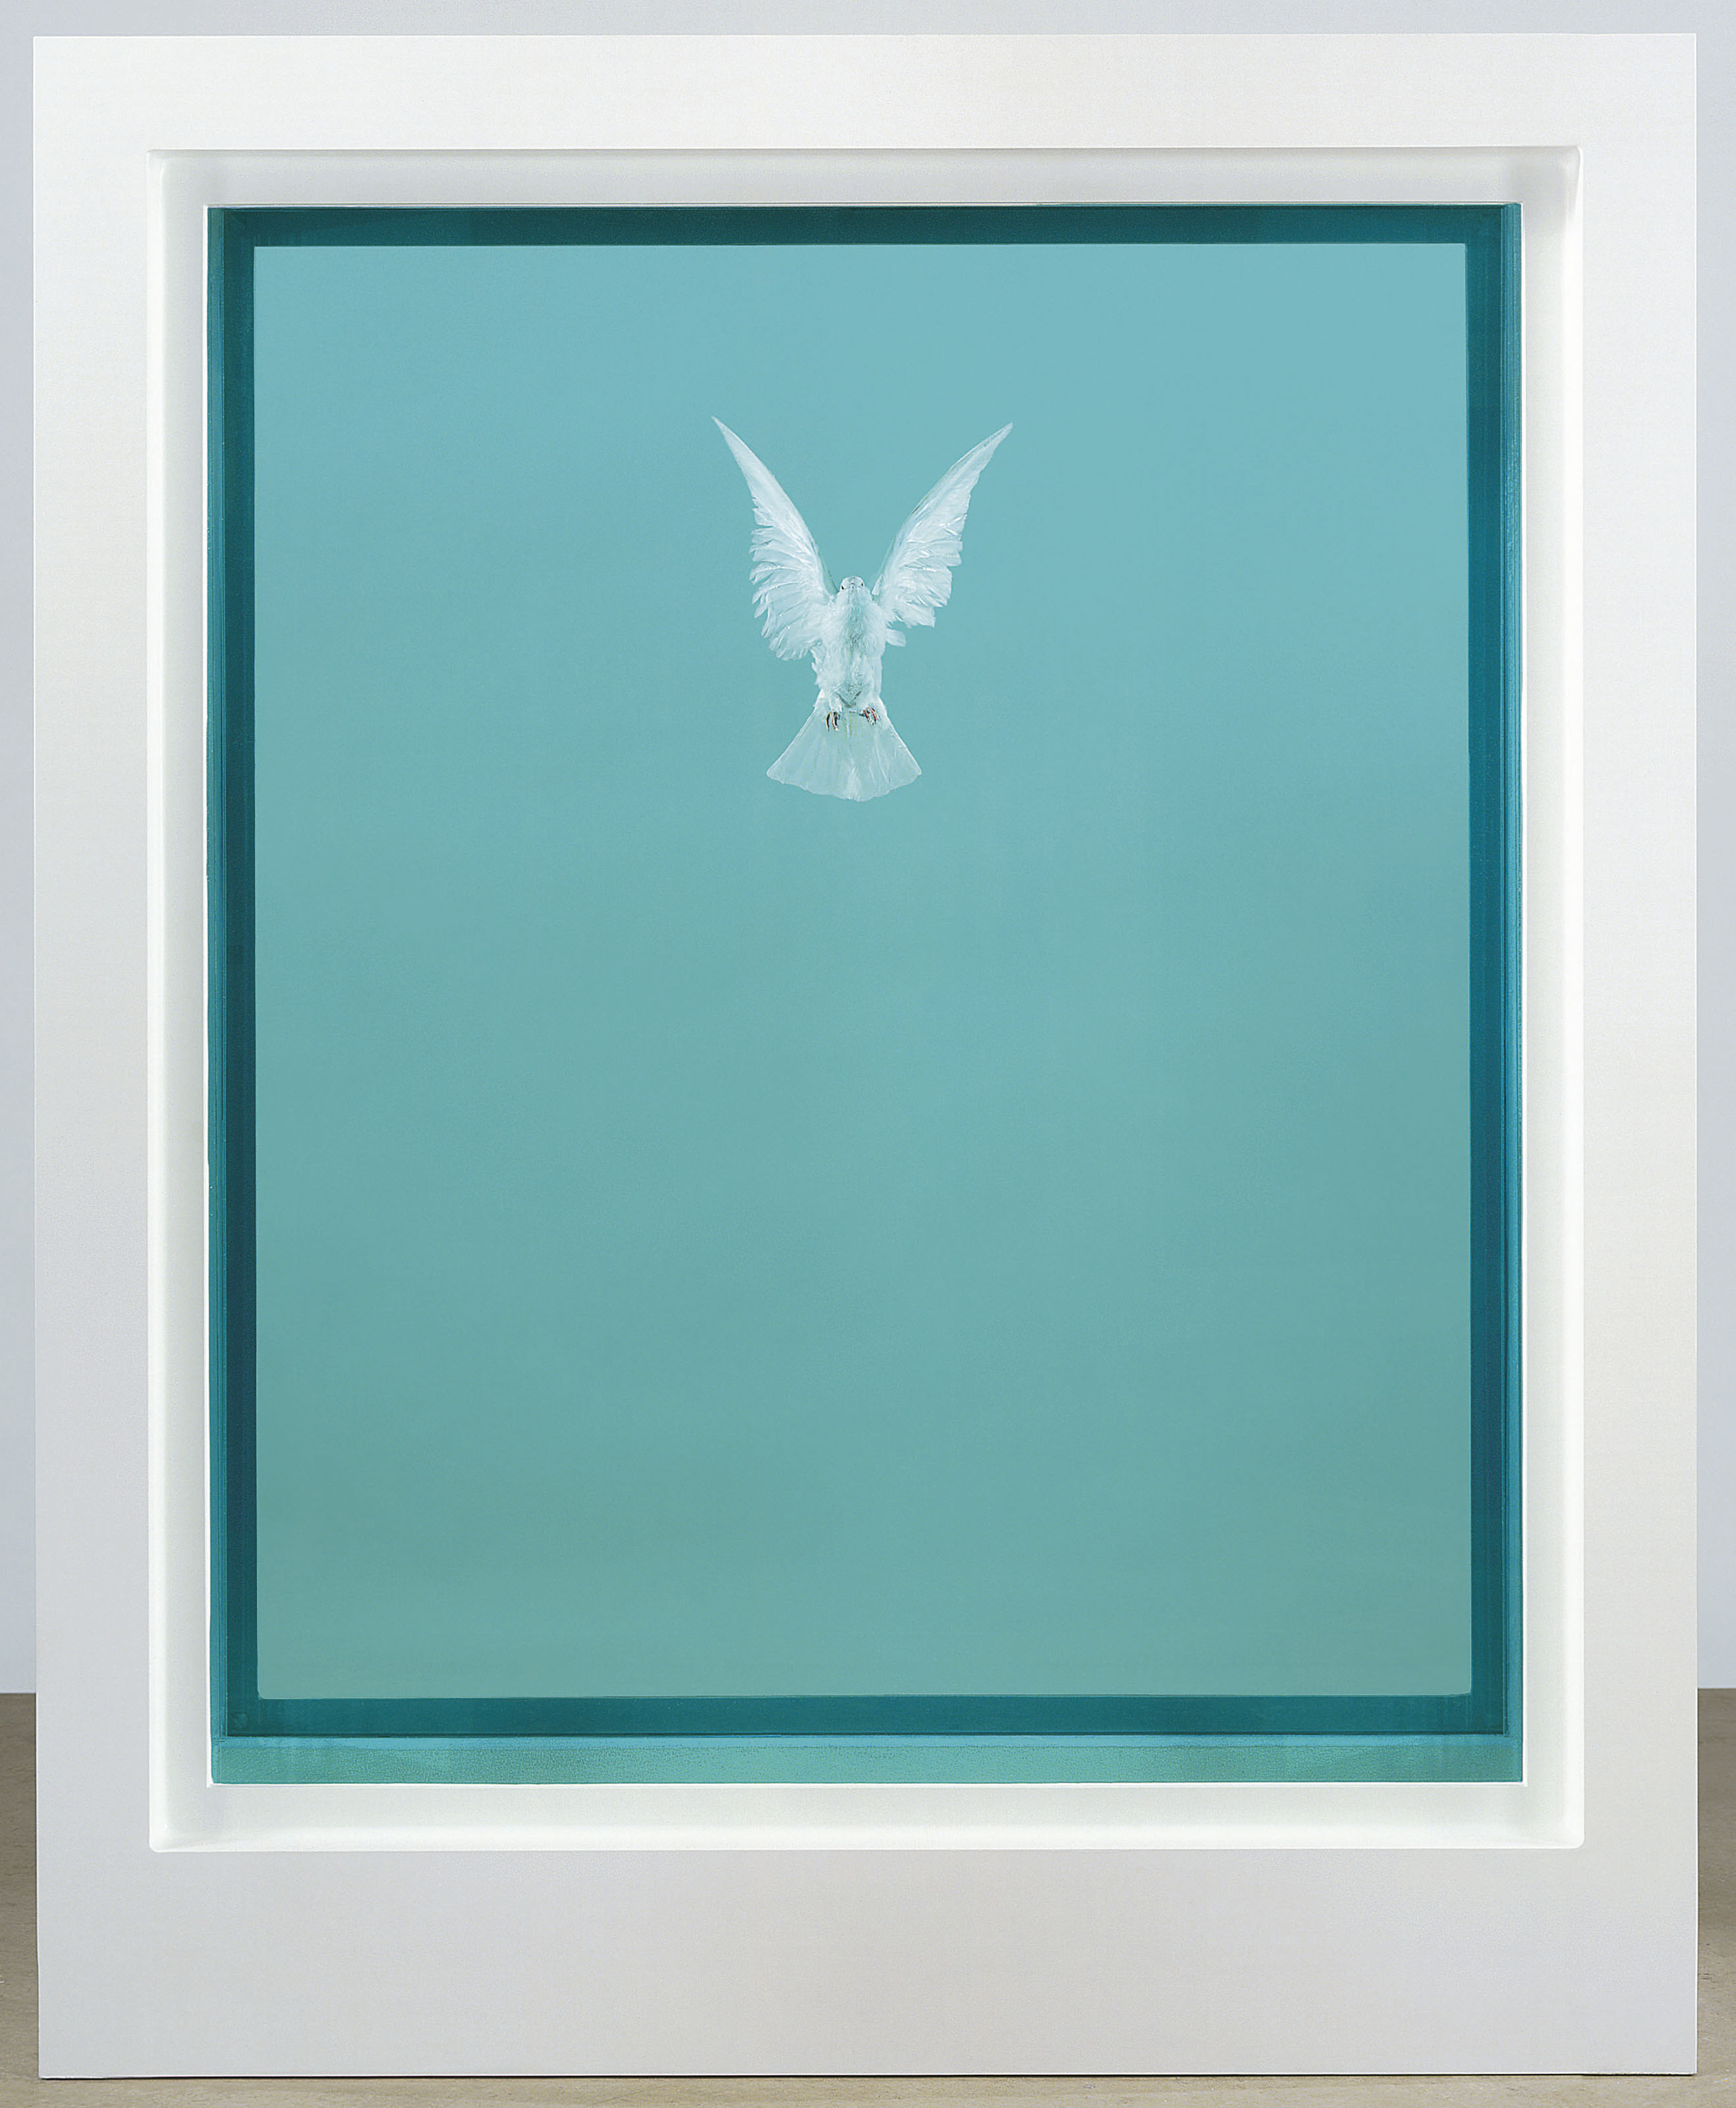 The Incomplete Truth, Damien Hirst, 2006. Photo: Christie's